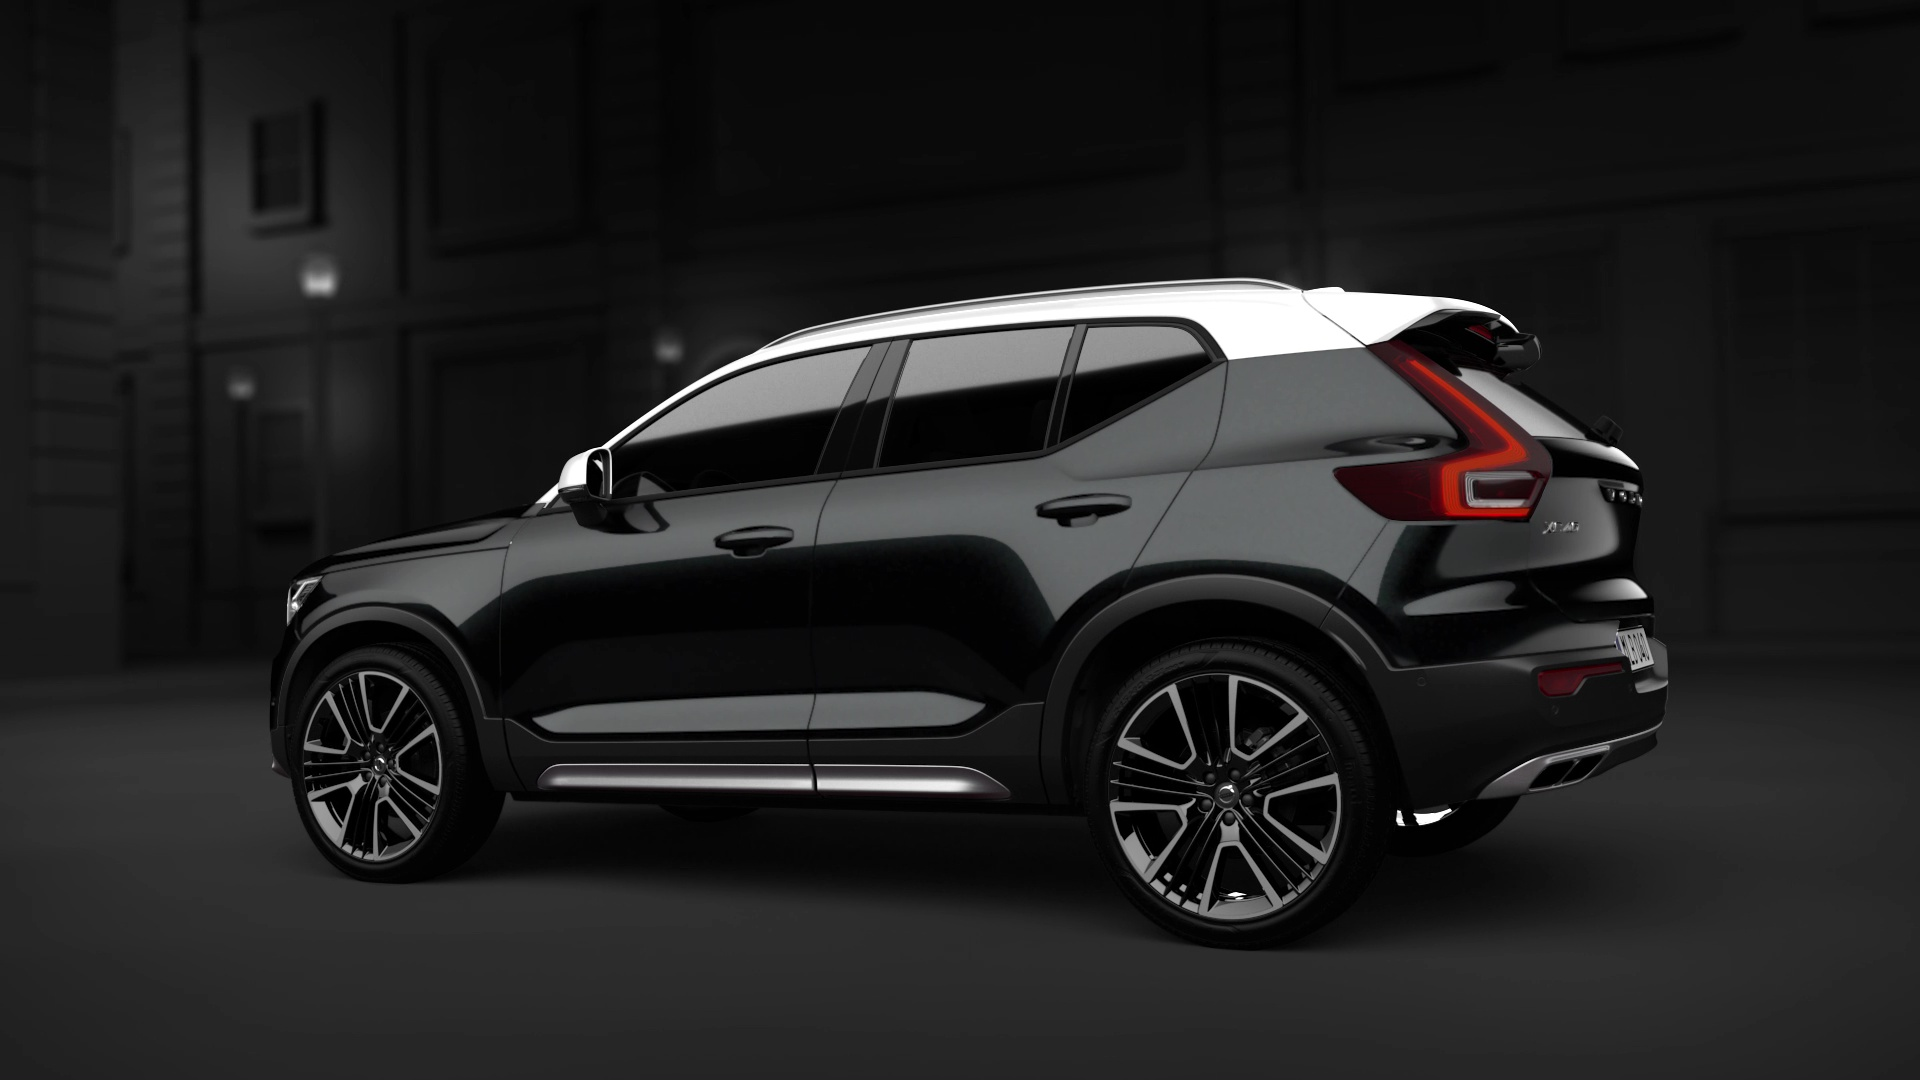 Volvo Xc40 Now Offered With An Exterior Styling Kit Paul Interiors Inside Ideas Interiors design about Everything [magnanprojects.com]